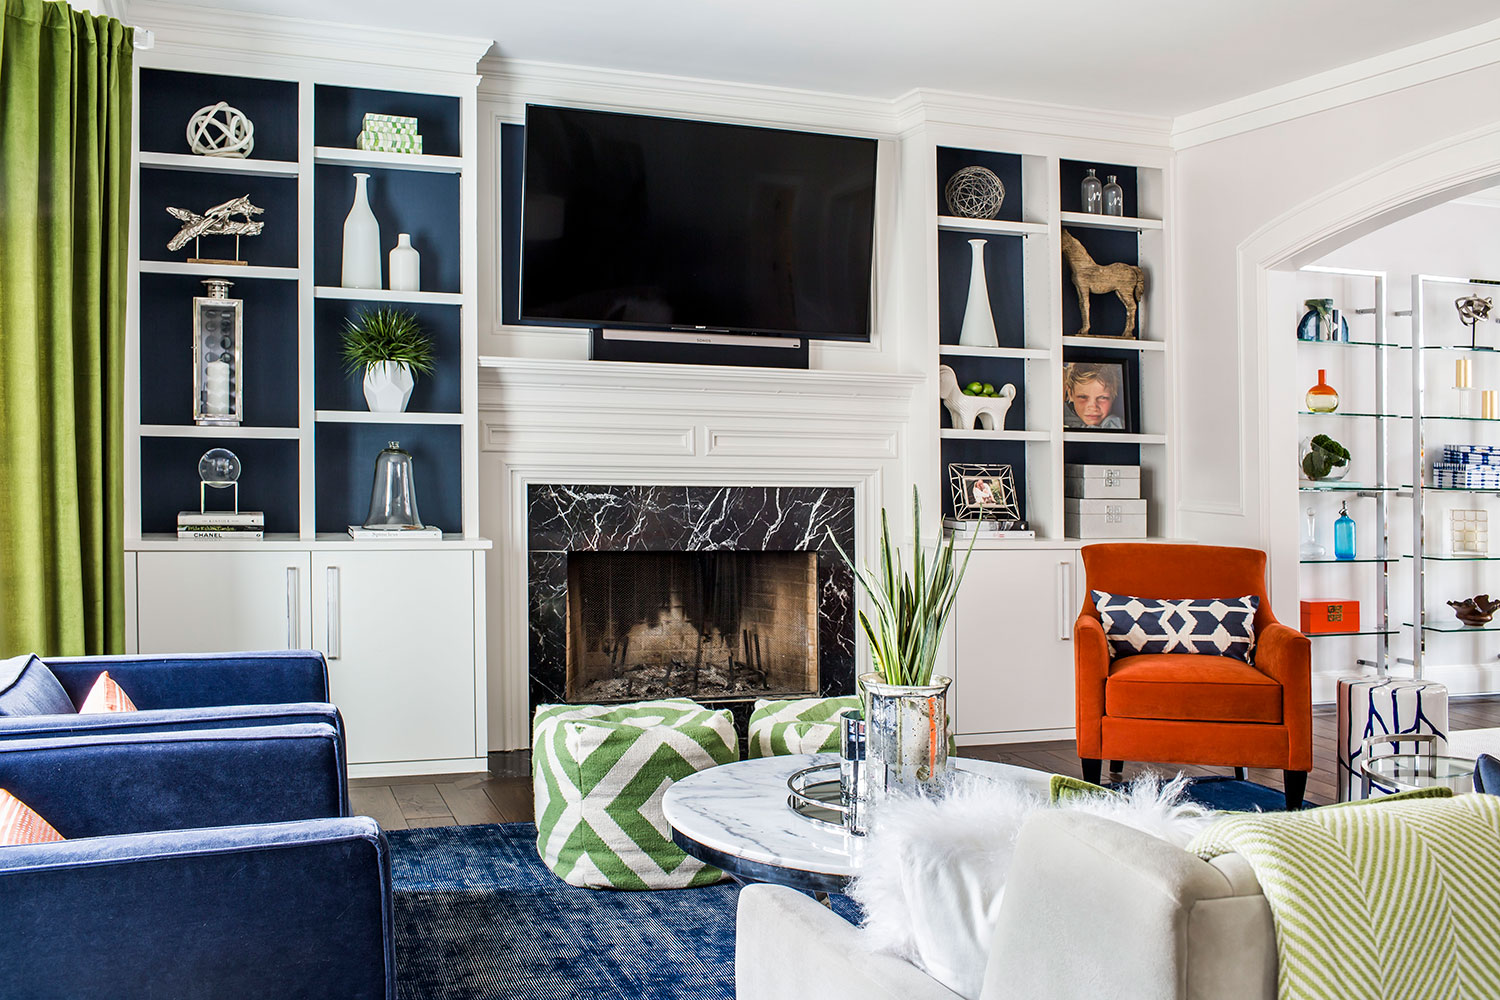 Living room with navy area rug, orange chair and a mix of midcentury modern and contemporary styling